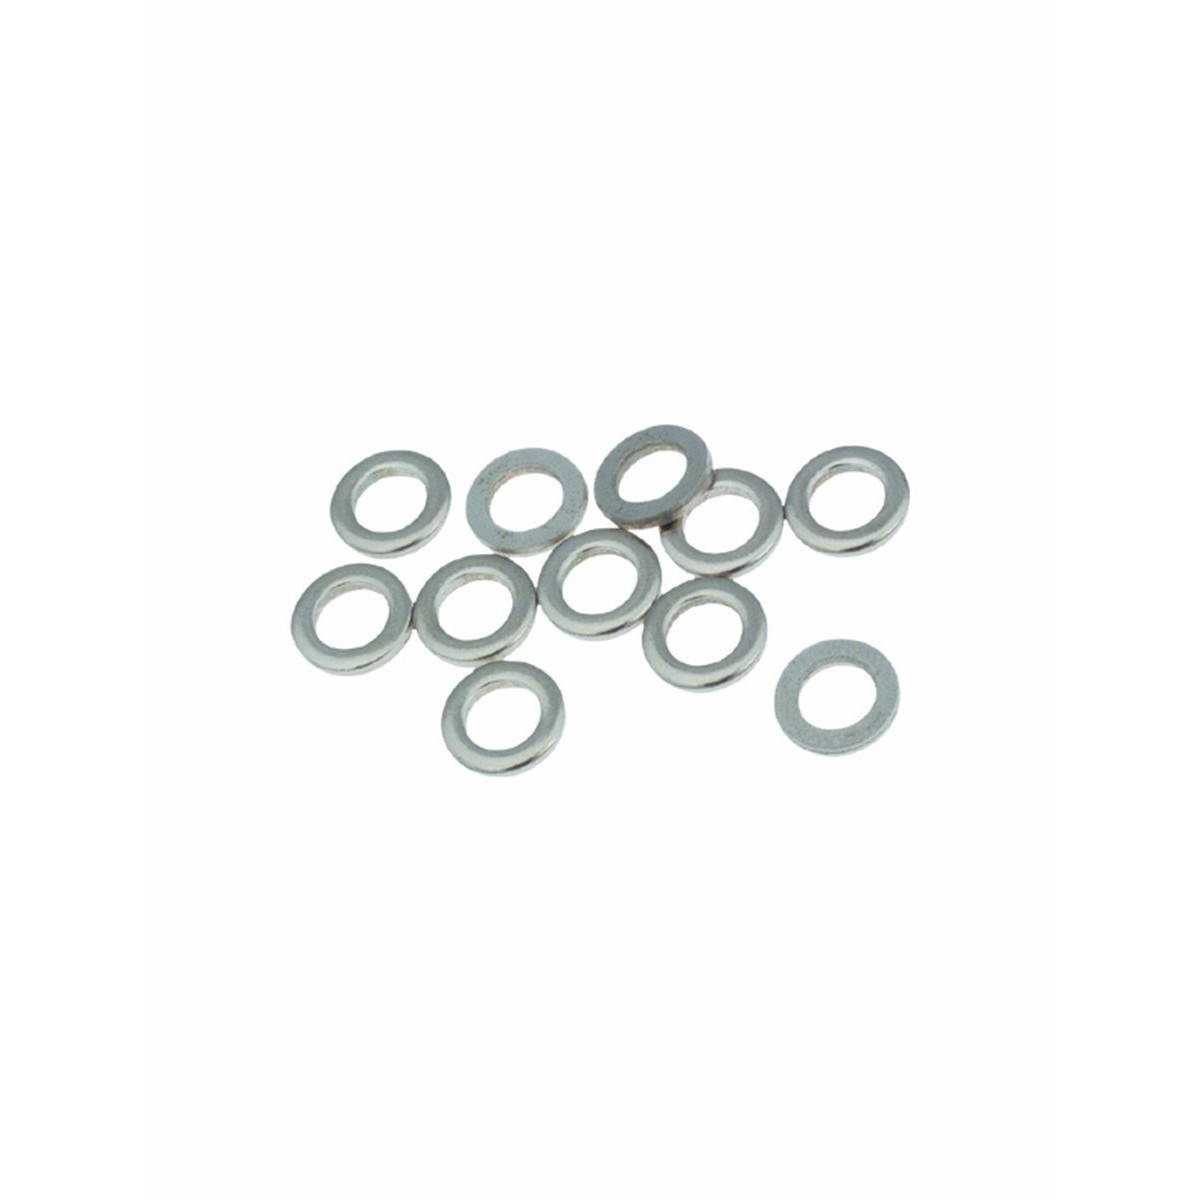 Gibraltar Tension Rod Washers, 12 Pack at Gear4music